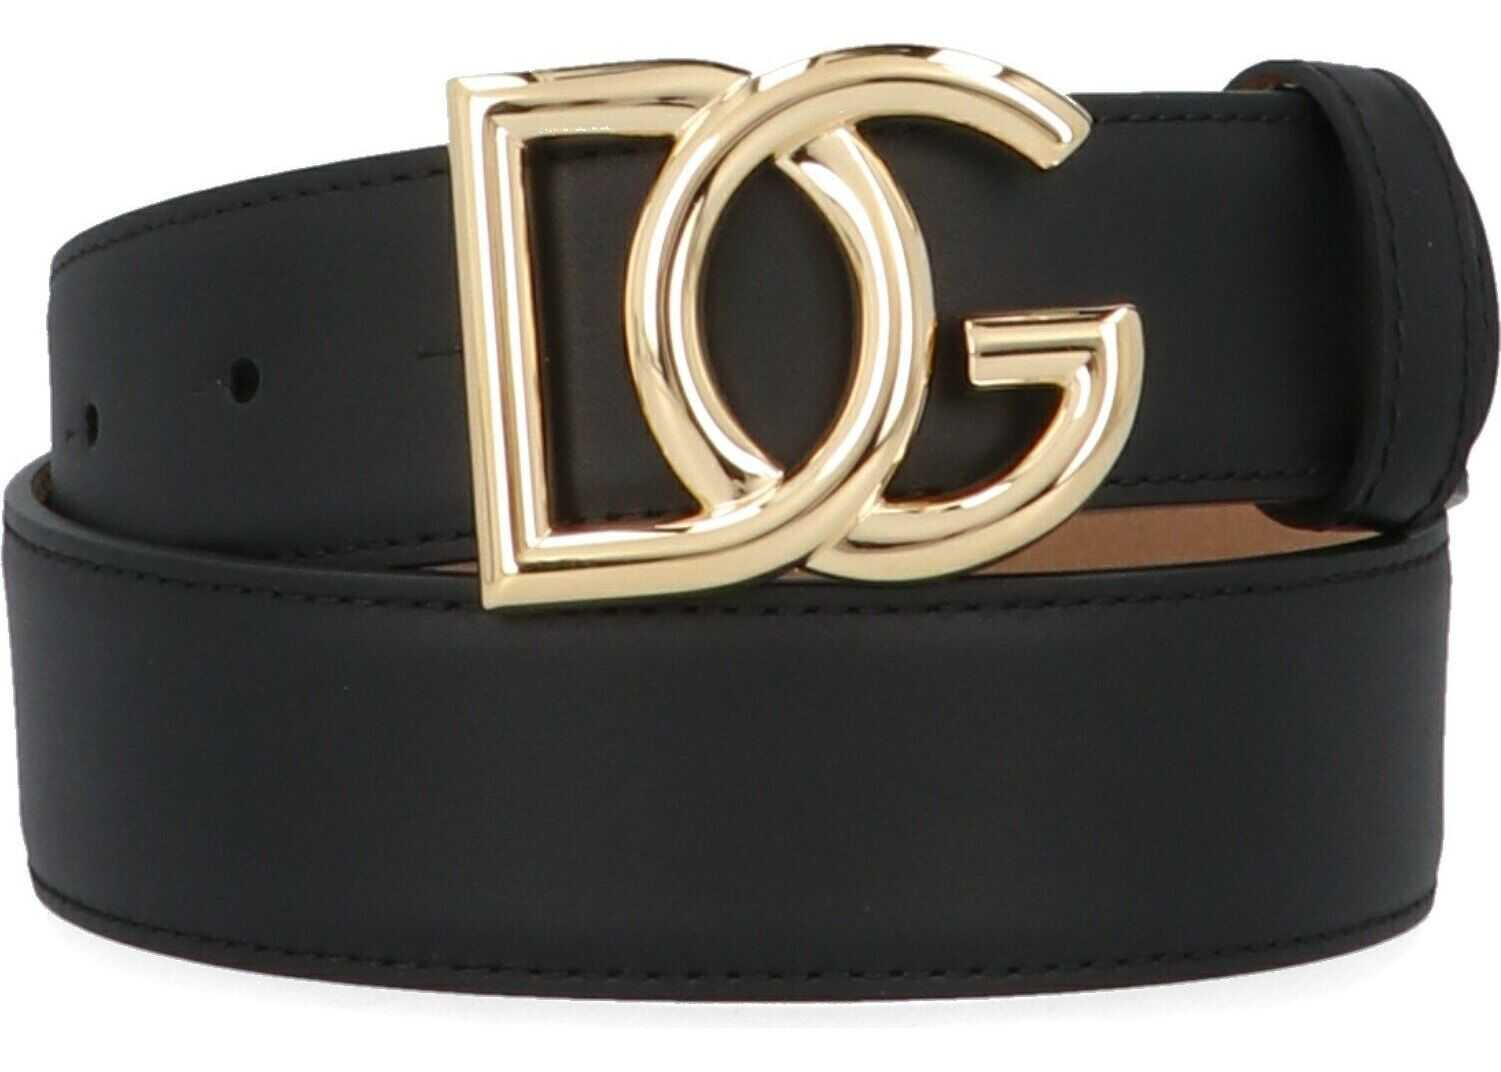 Dolce & Gabbana Leather Belt BLACK